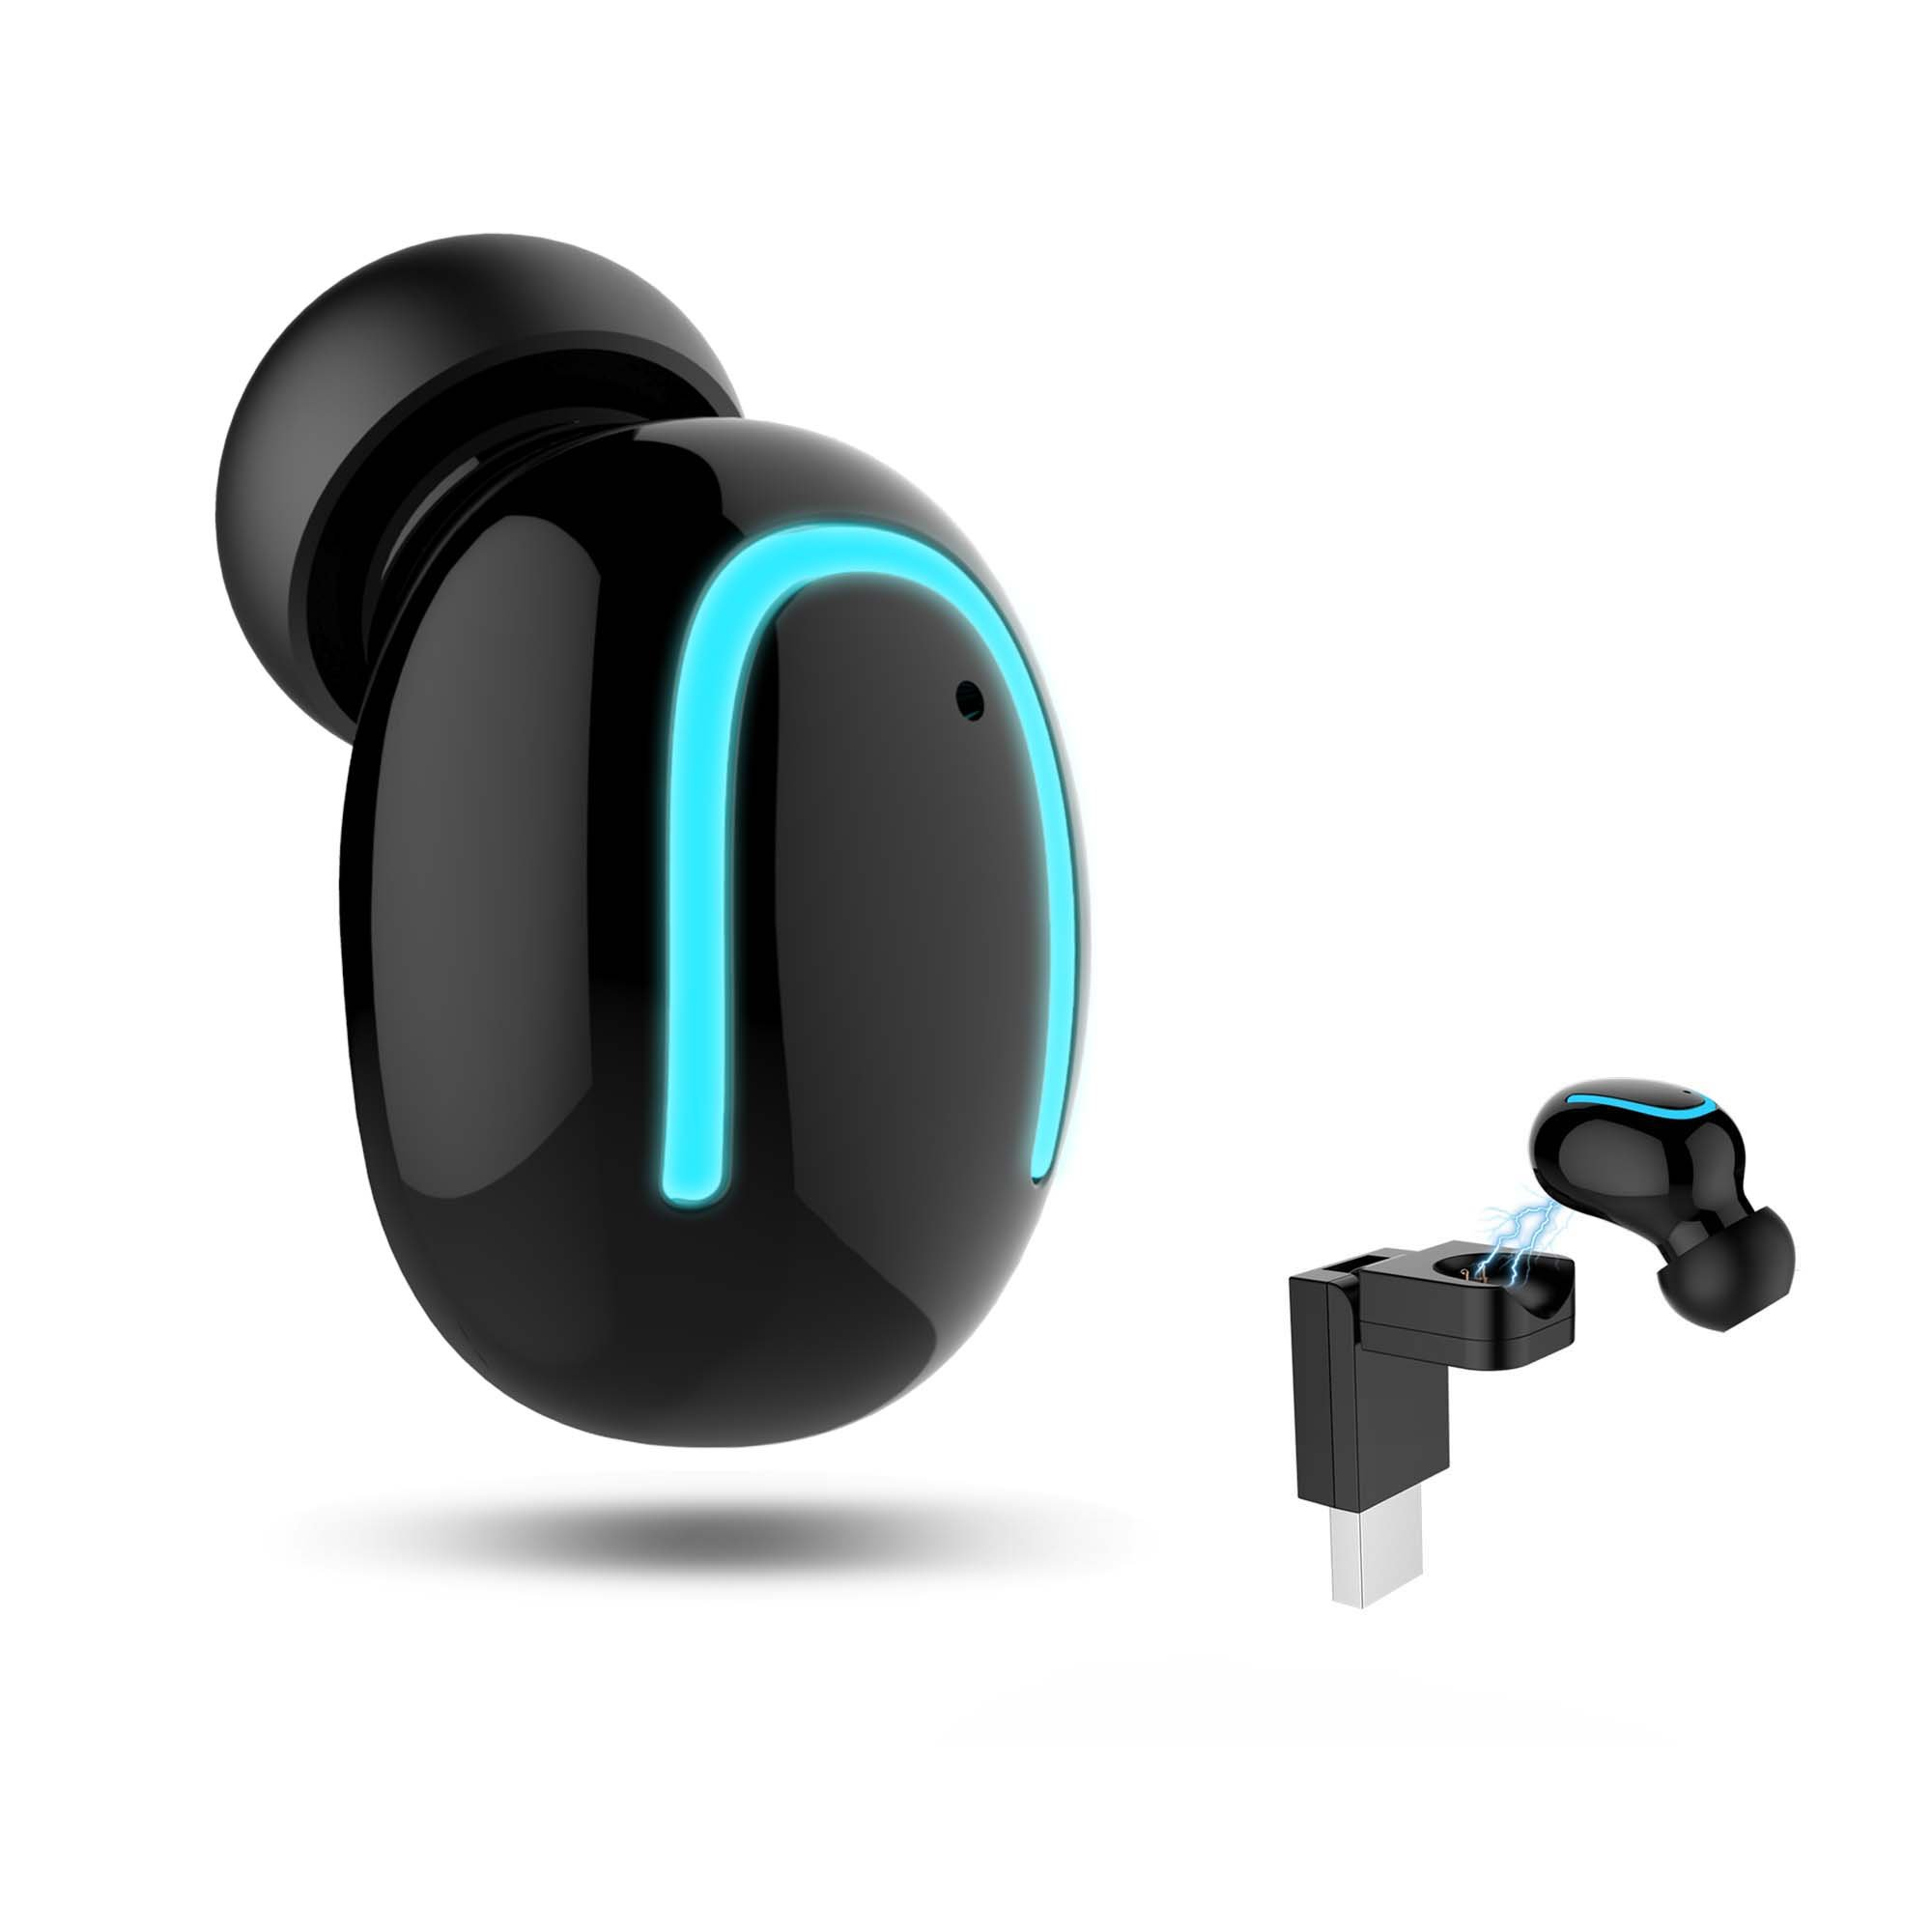 Bluetooth Headphone Wireless Sport Earbuds With Wireless USB Charger V4.1 Mini Bluetooth Earphone Earpiece Invisible Headset With Mic For iPhone Samsung Android (One Pcs)